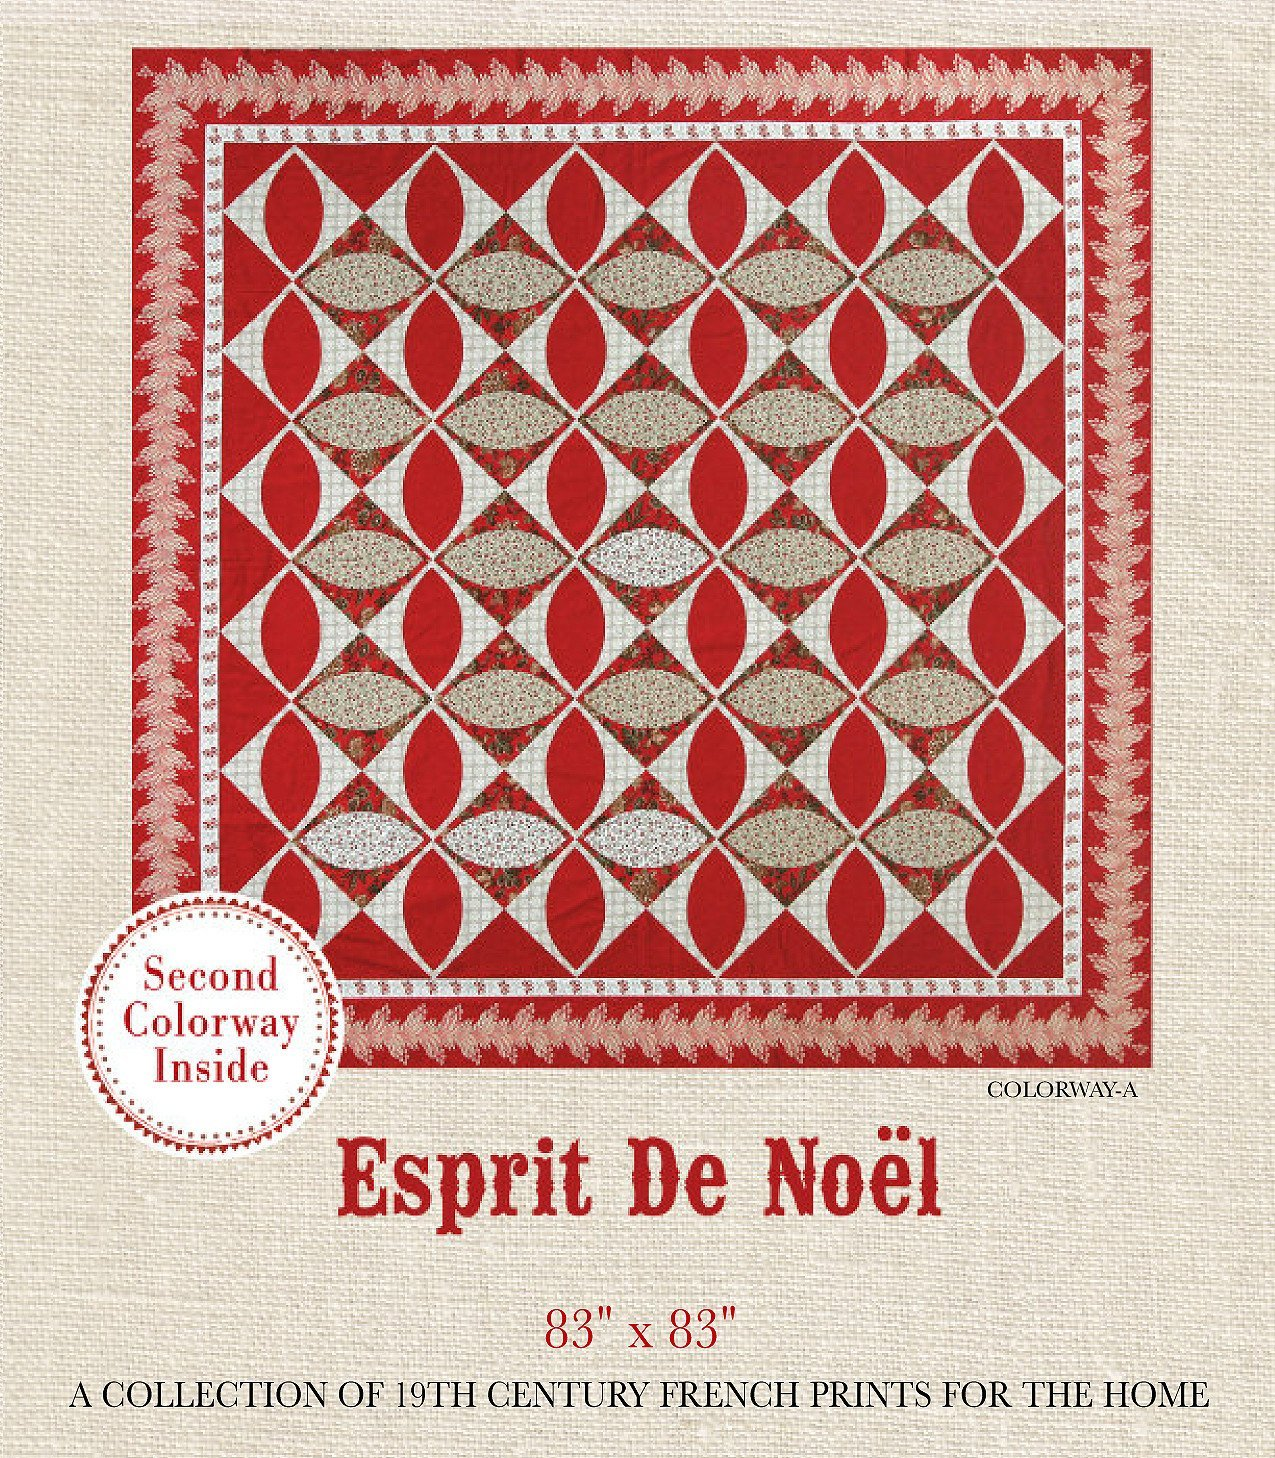 FRENCH GENERAL ESPRIT DE NOEL / PATTERN